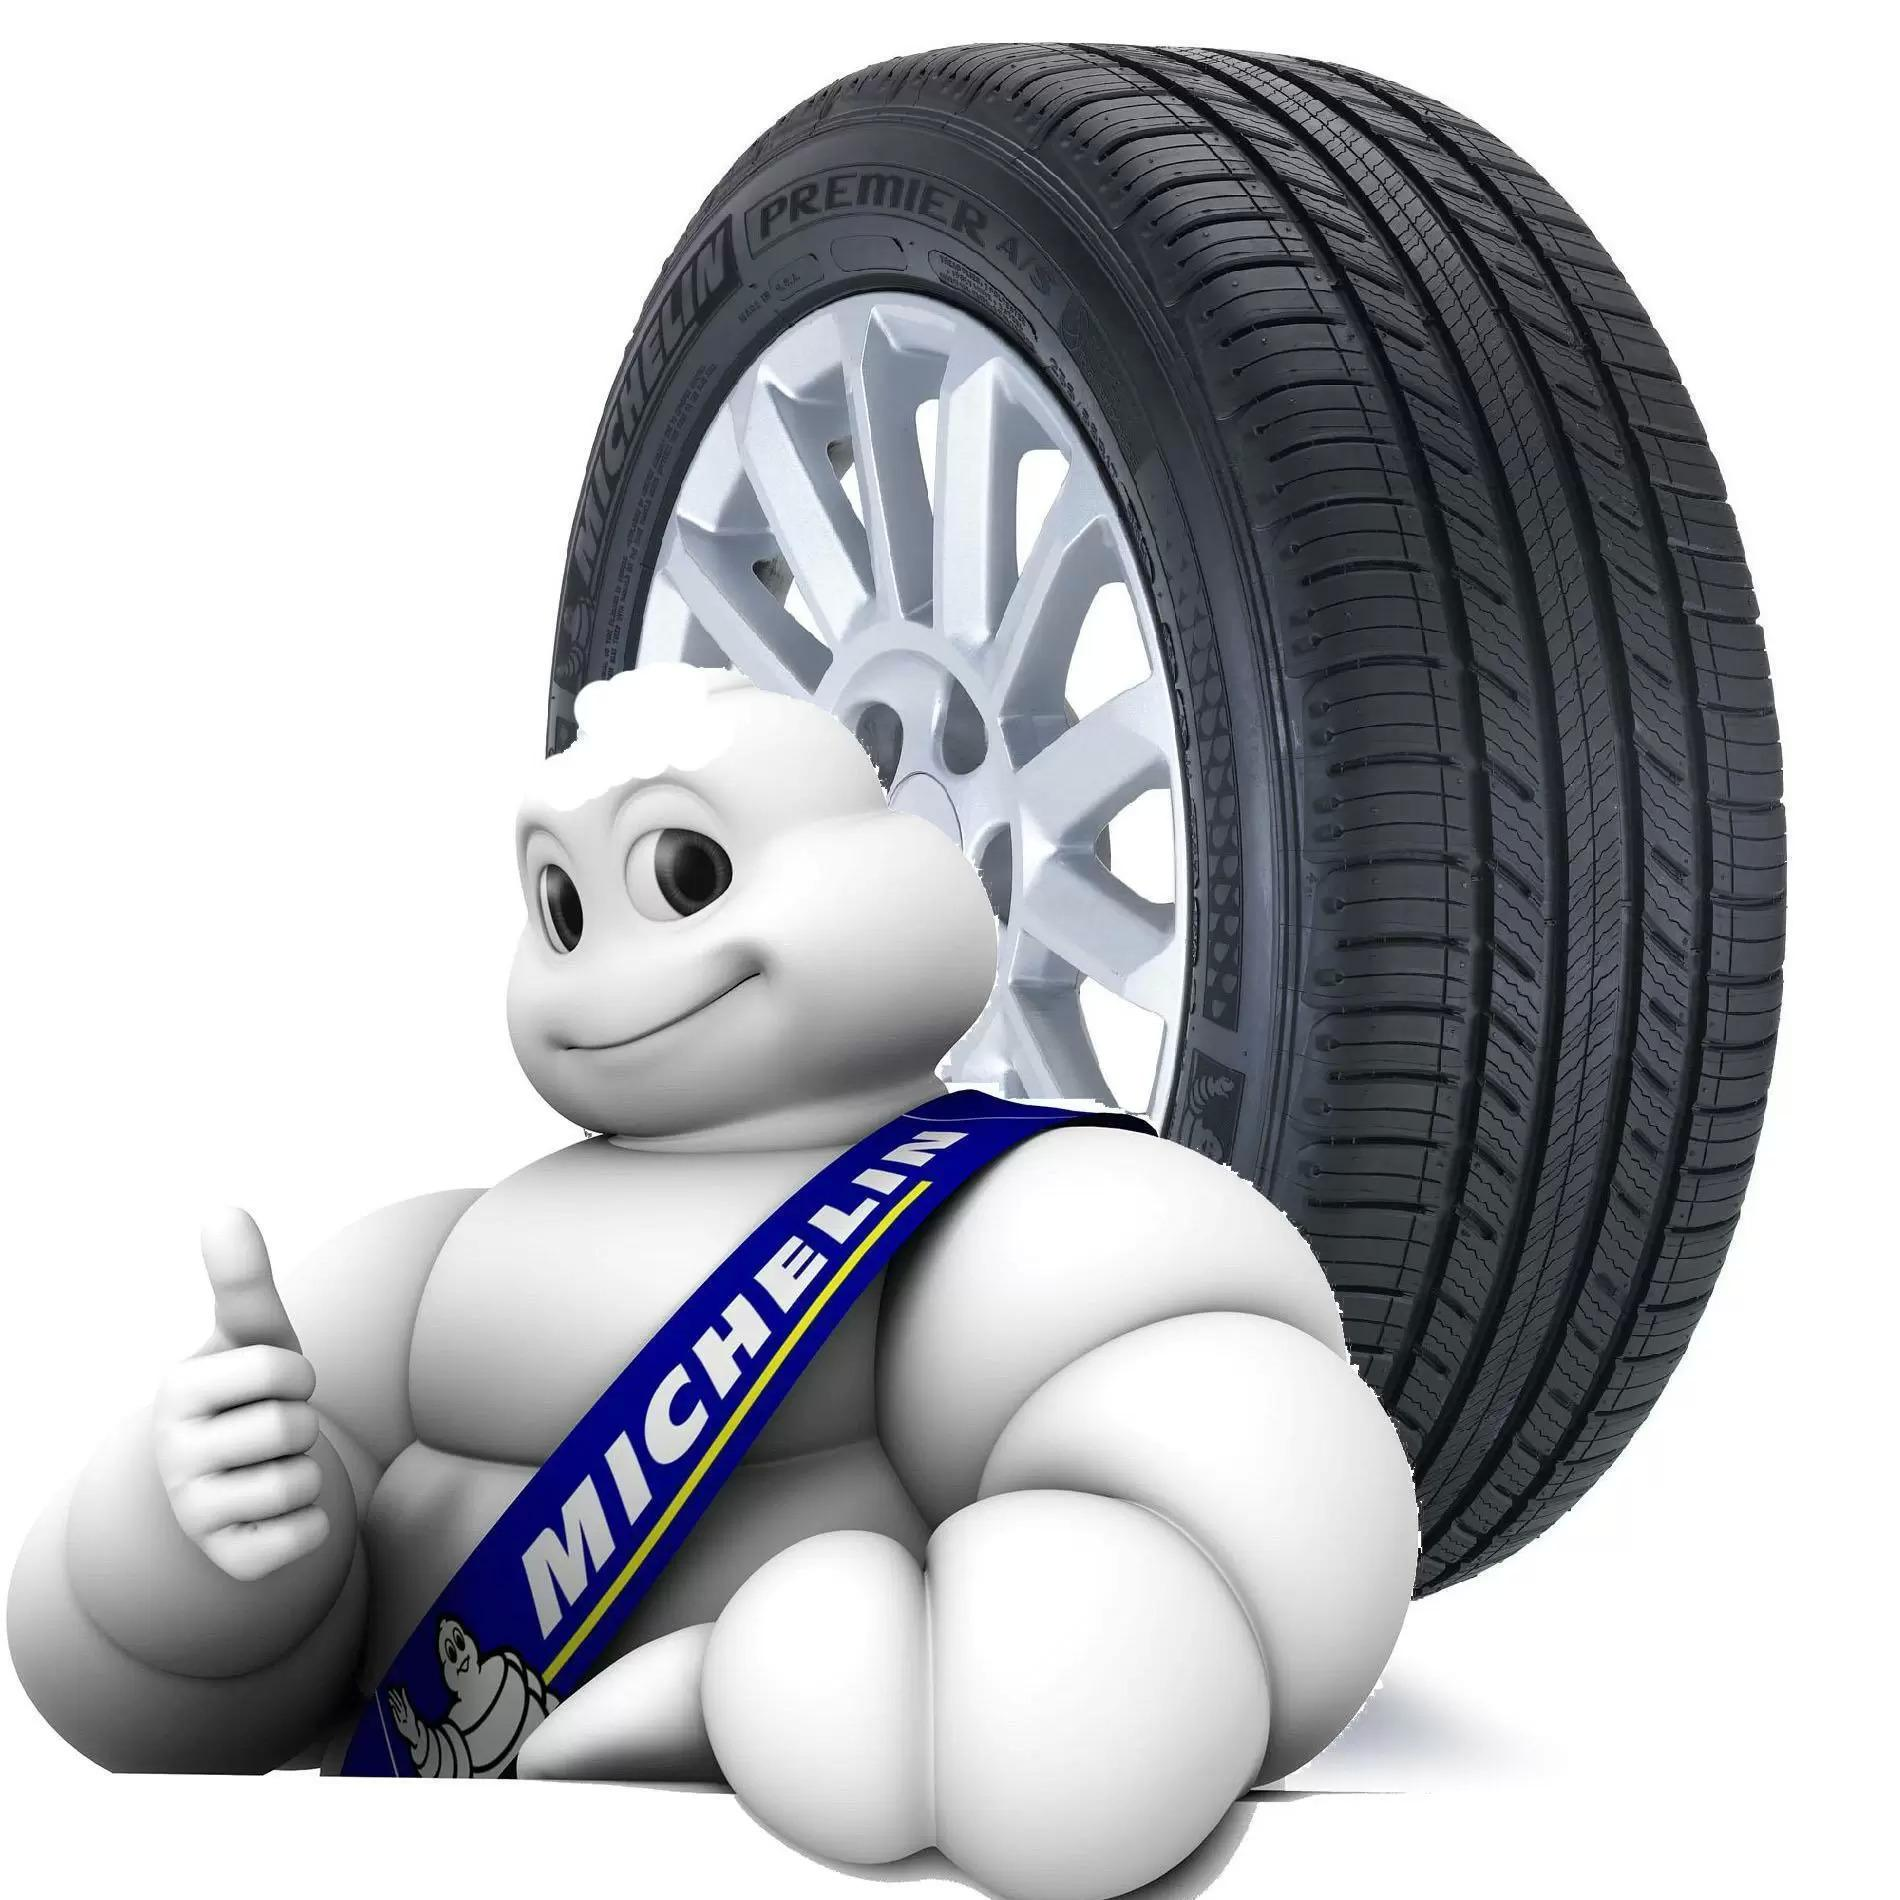 Costco Any Set 4 Michelin Tires with Installation Off